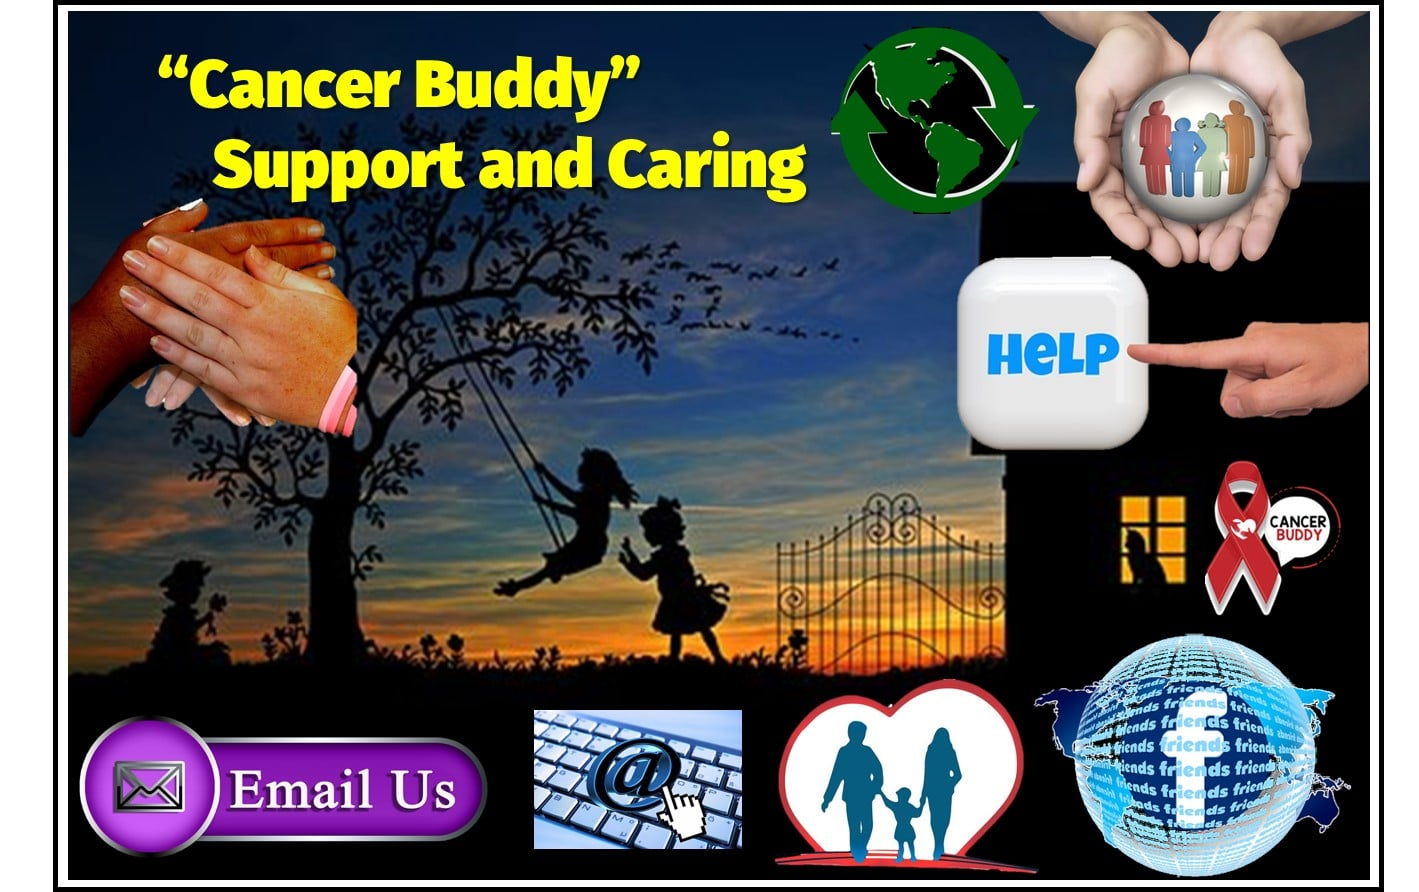 CancerBuddyServices